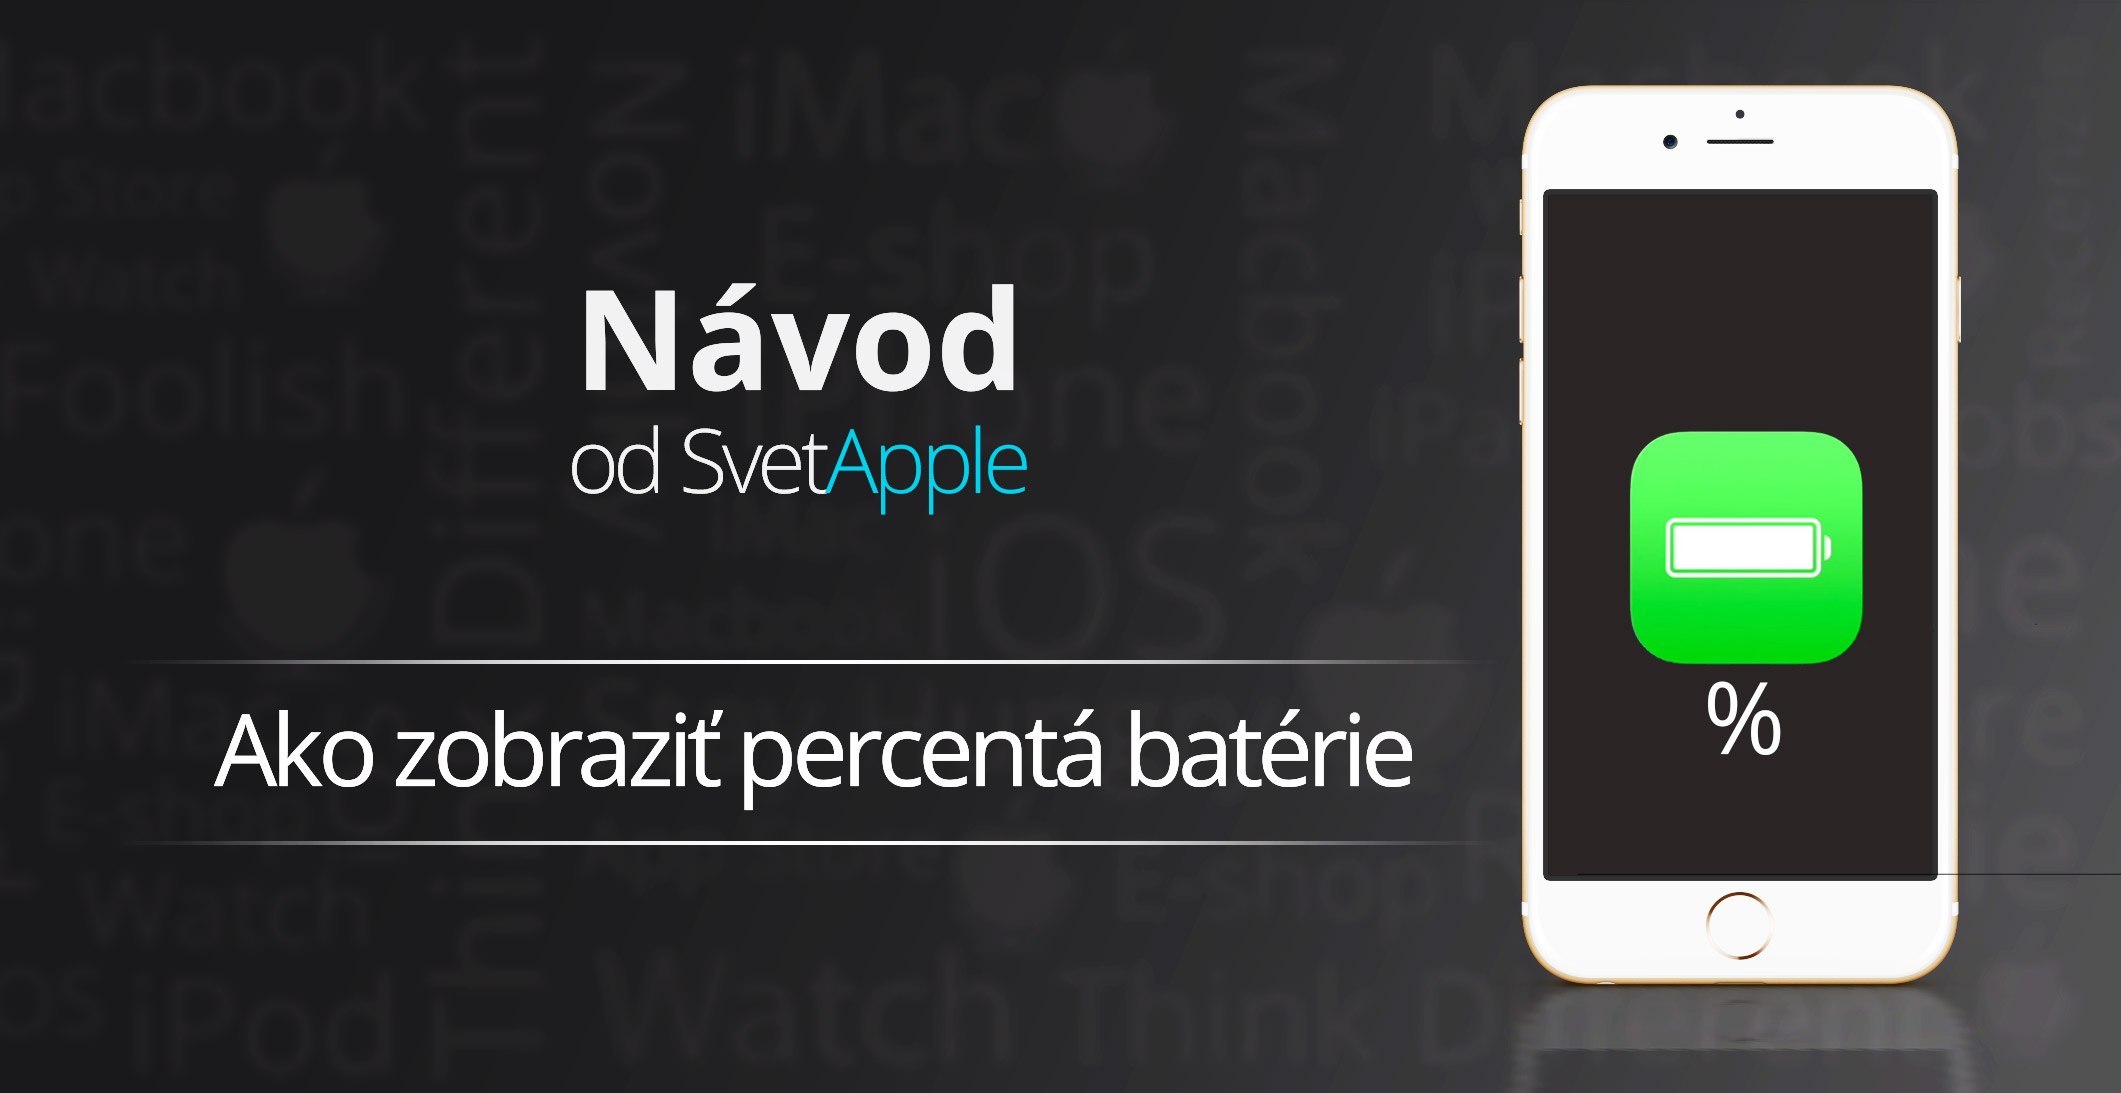 navod-iphone-percenta-baterie-svetapple